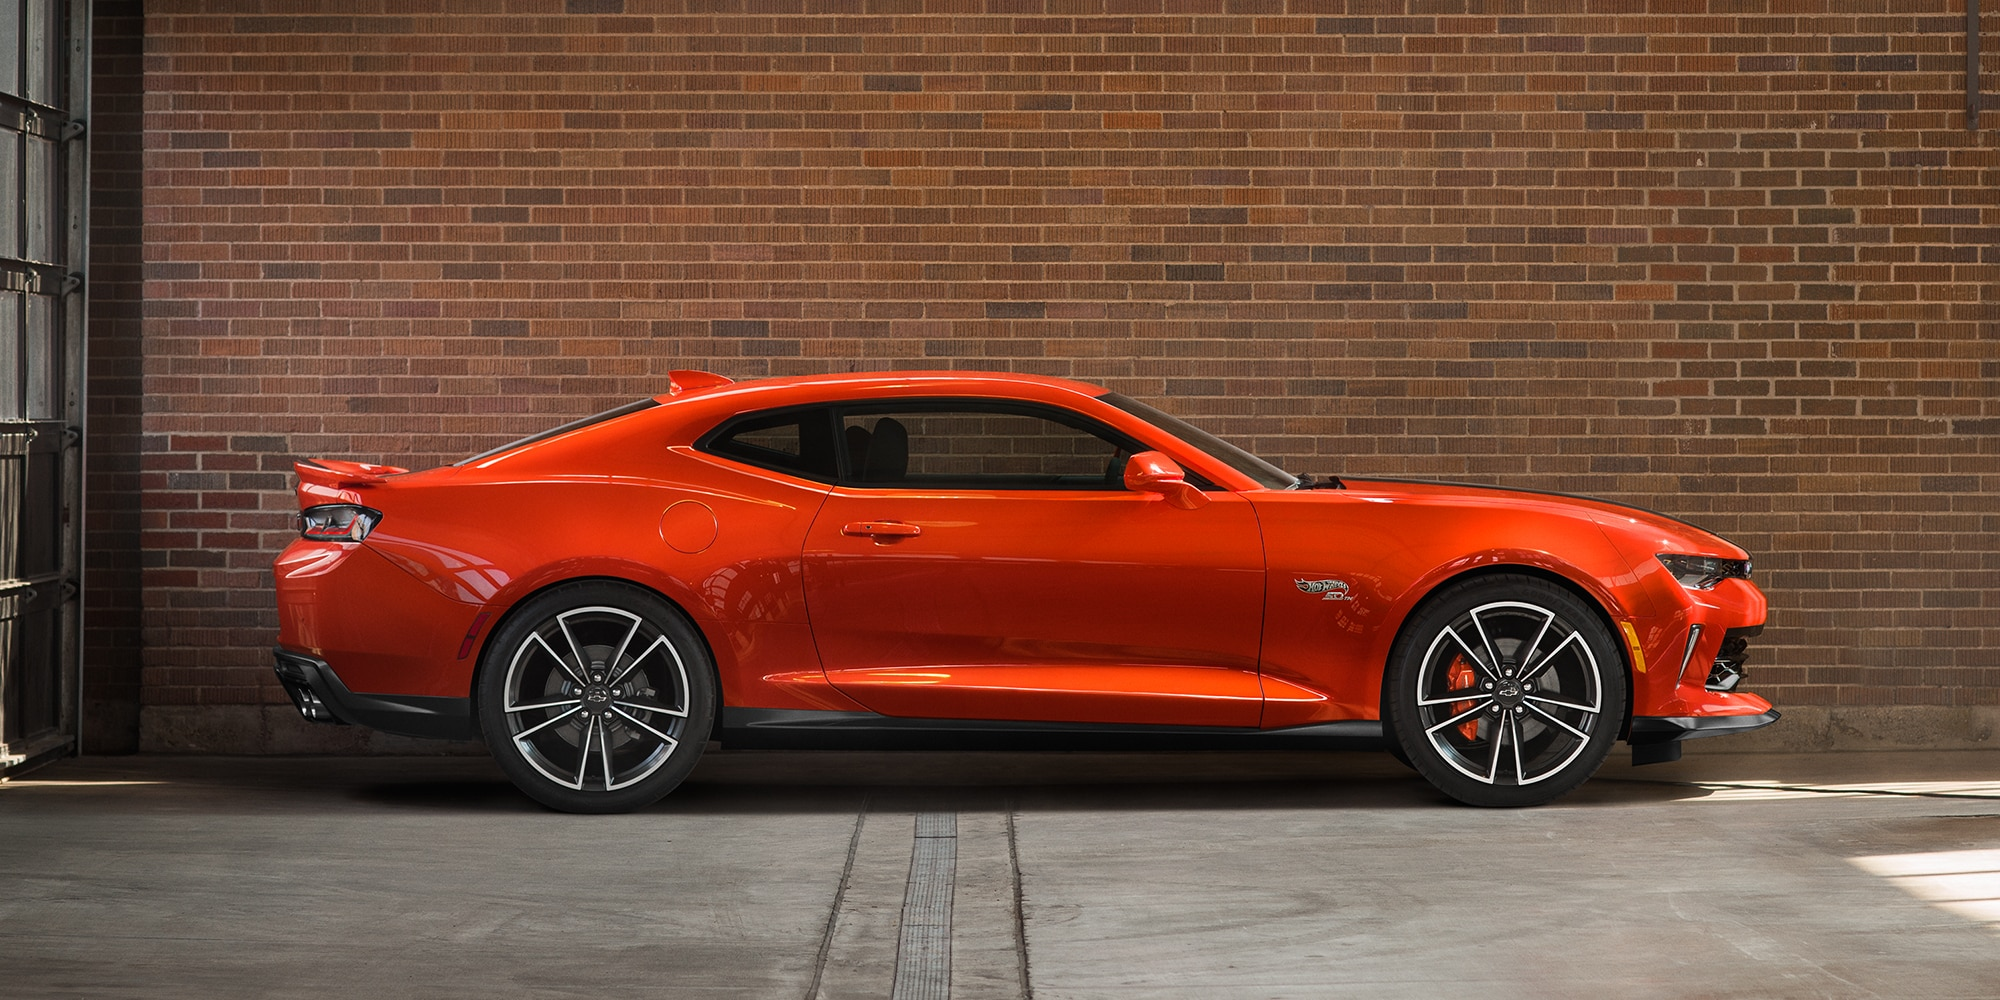 Chevrolet Camaro Hot Wheels Edition: Exterior lateral